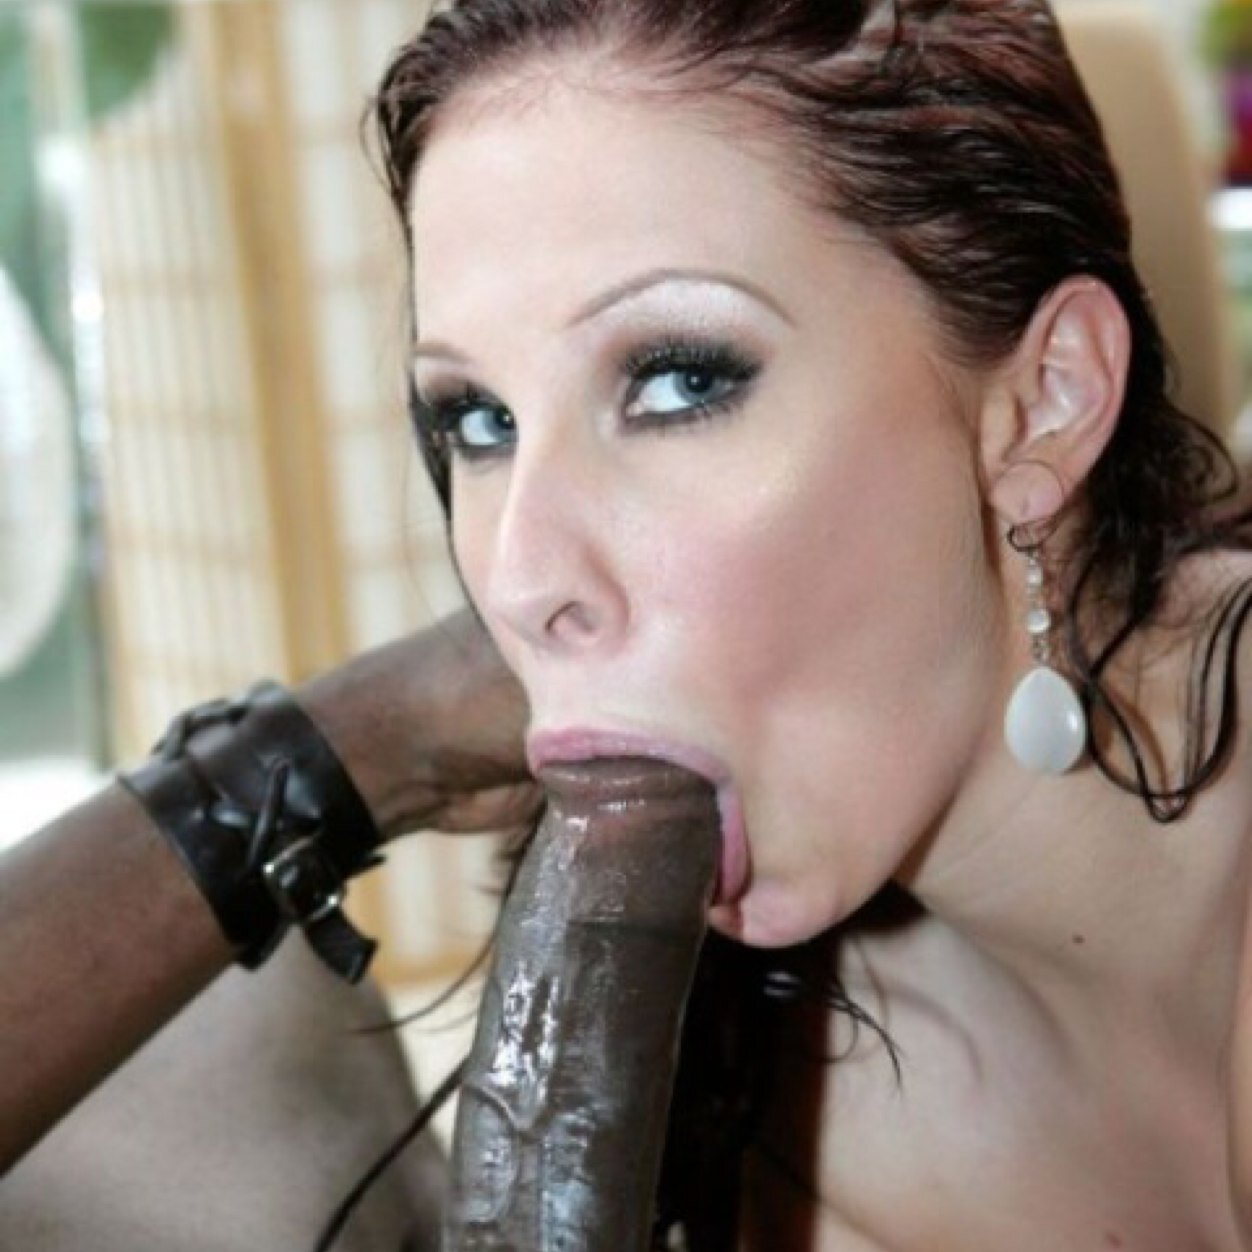 Appearance gianna michaels